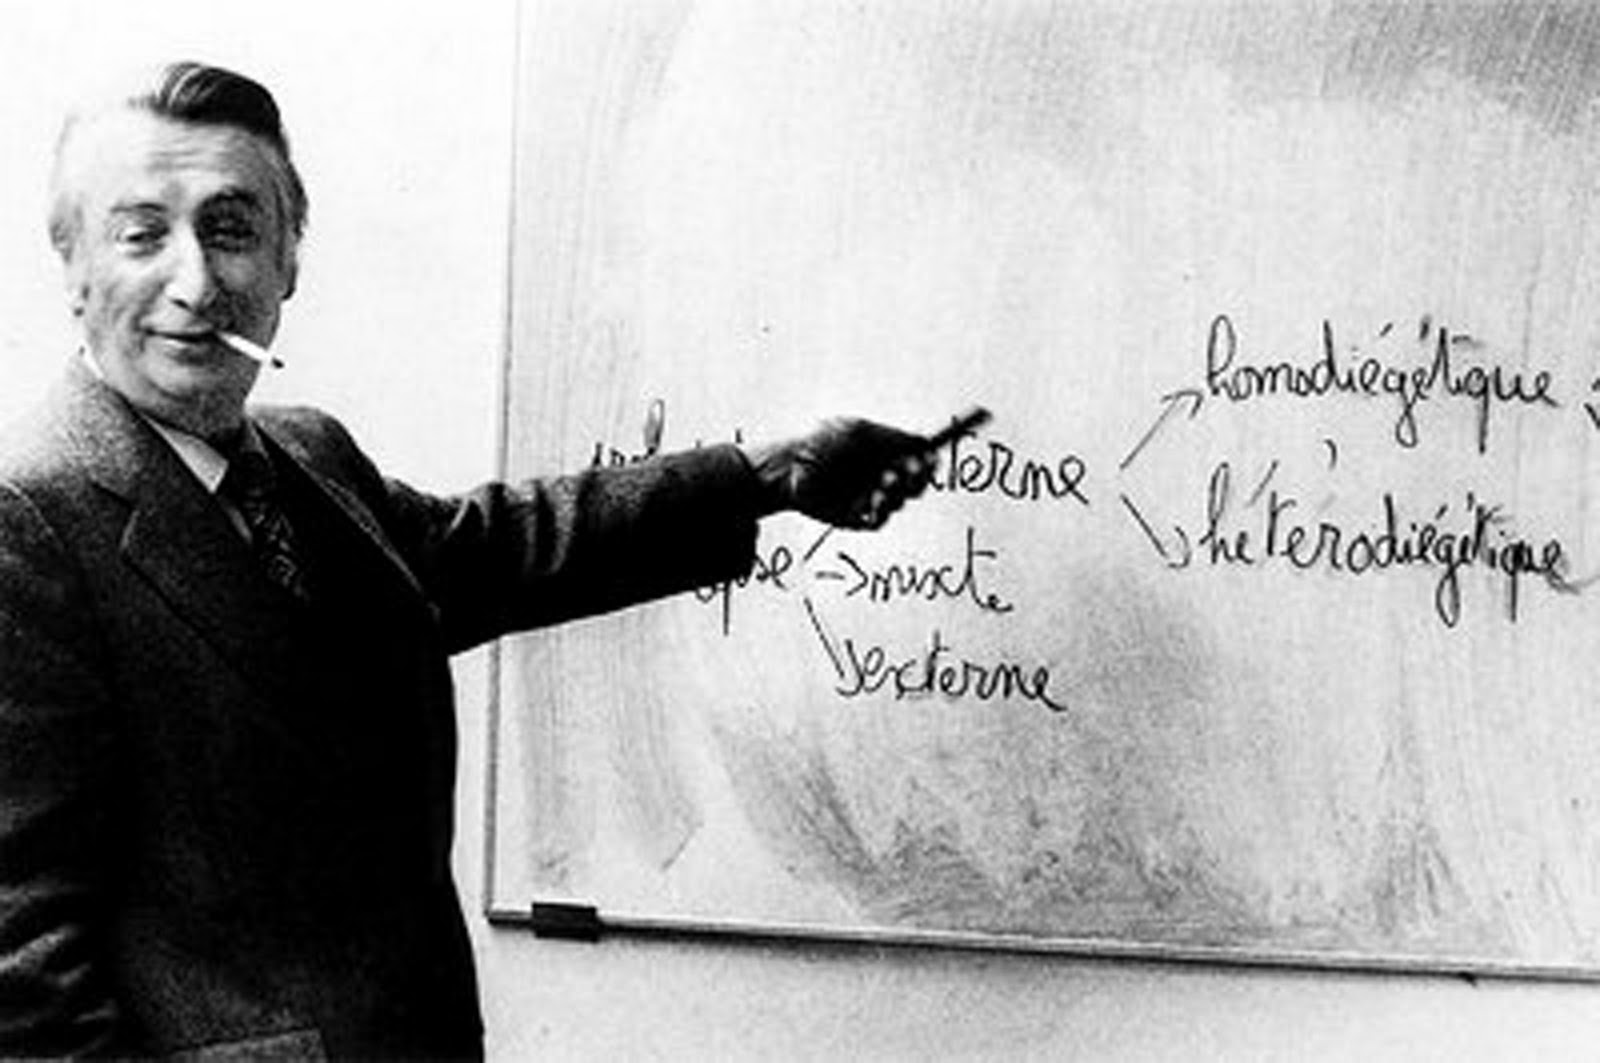 Roland Barthes during one of his lecture courses at the Collège de France